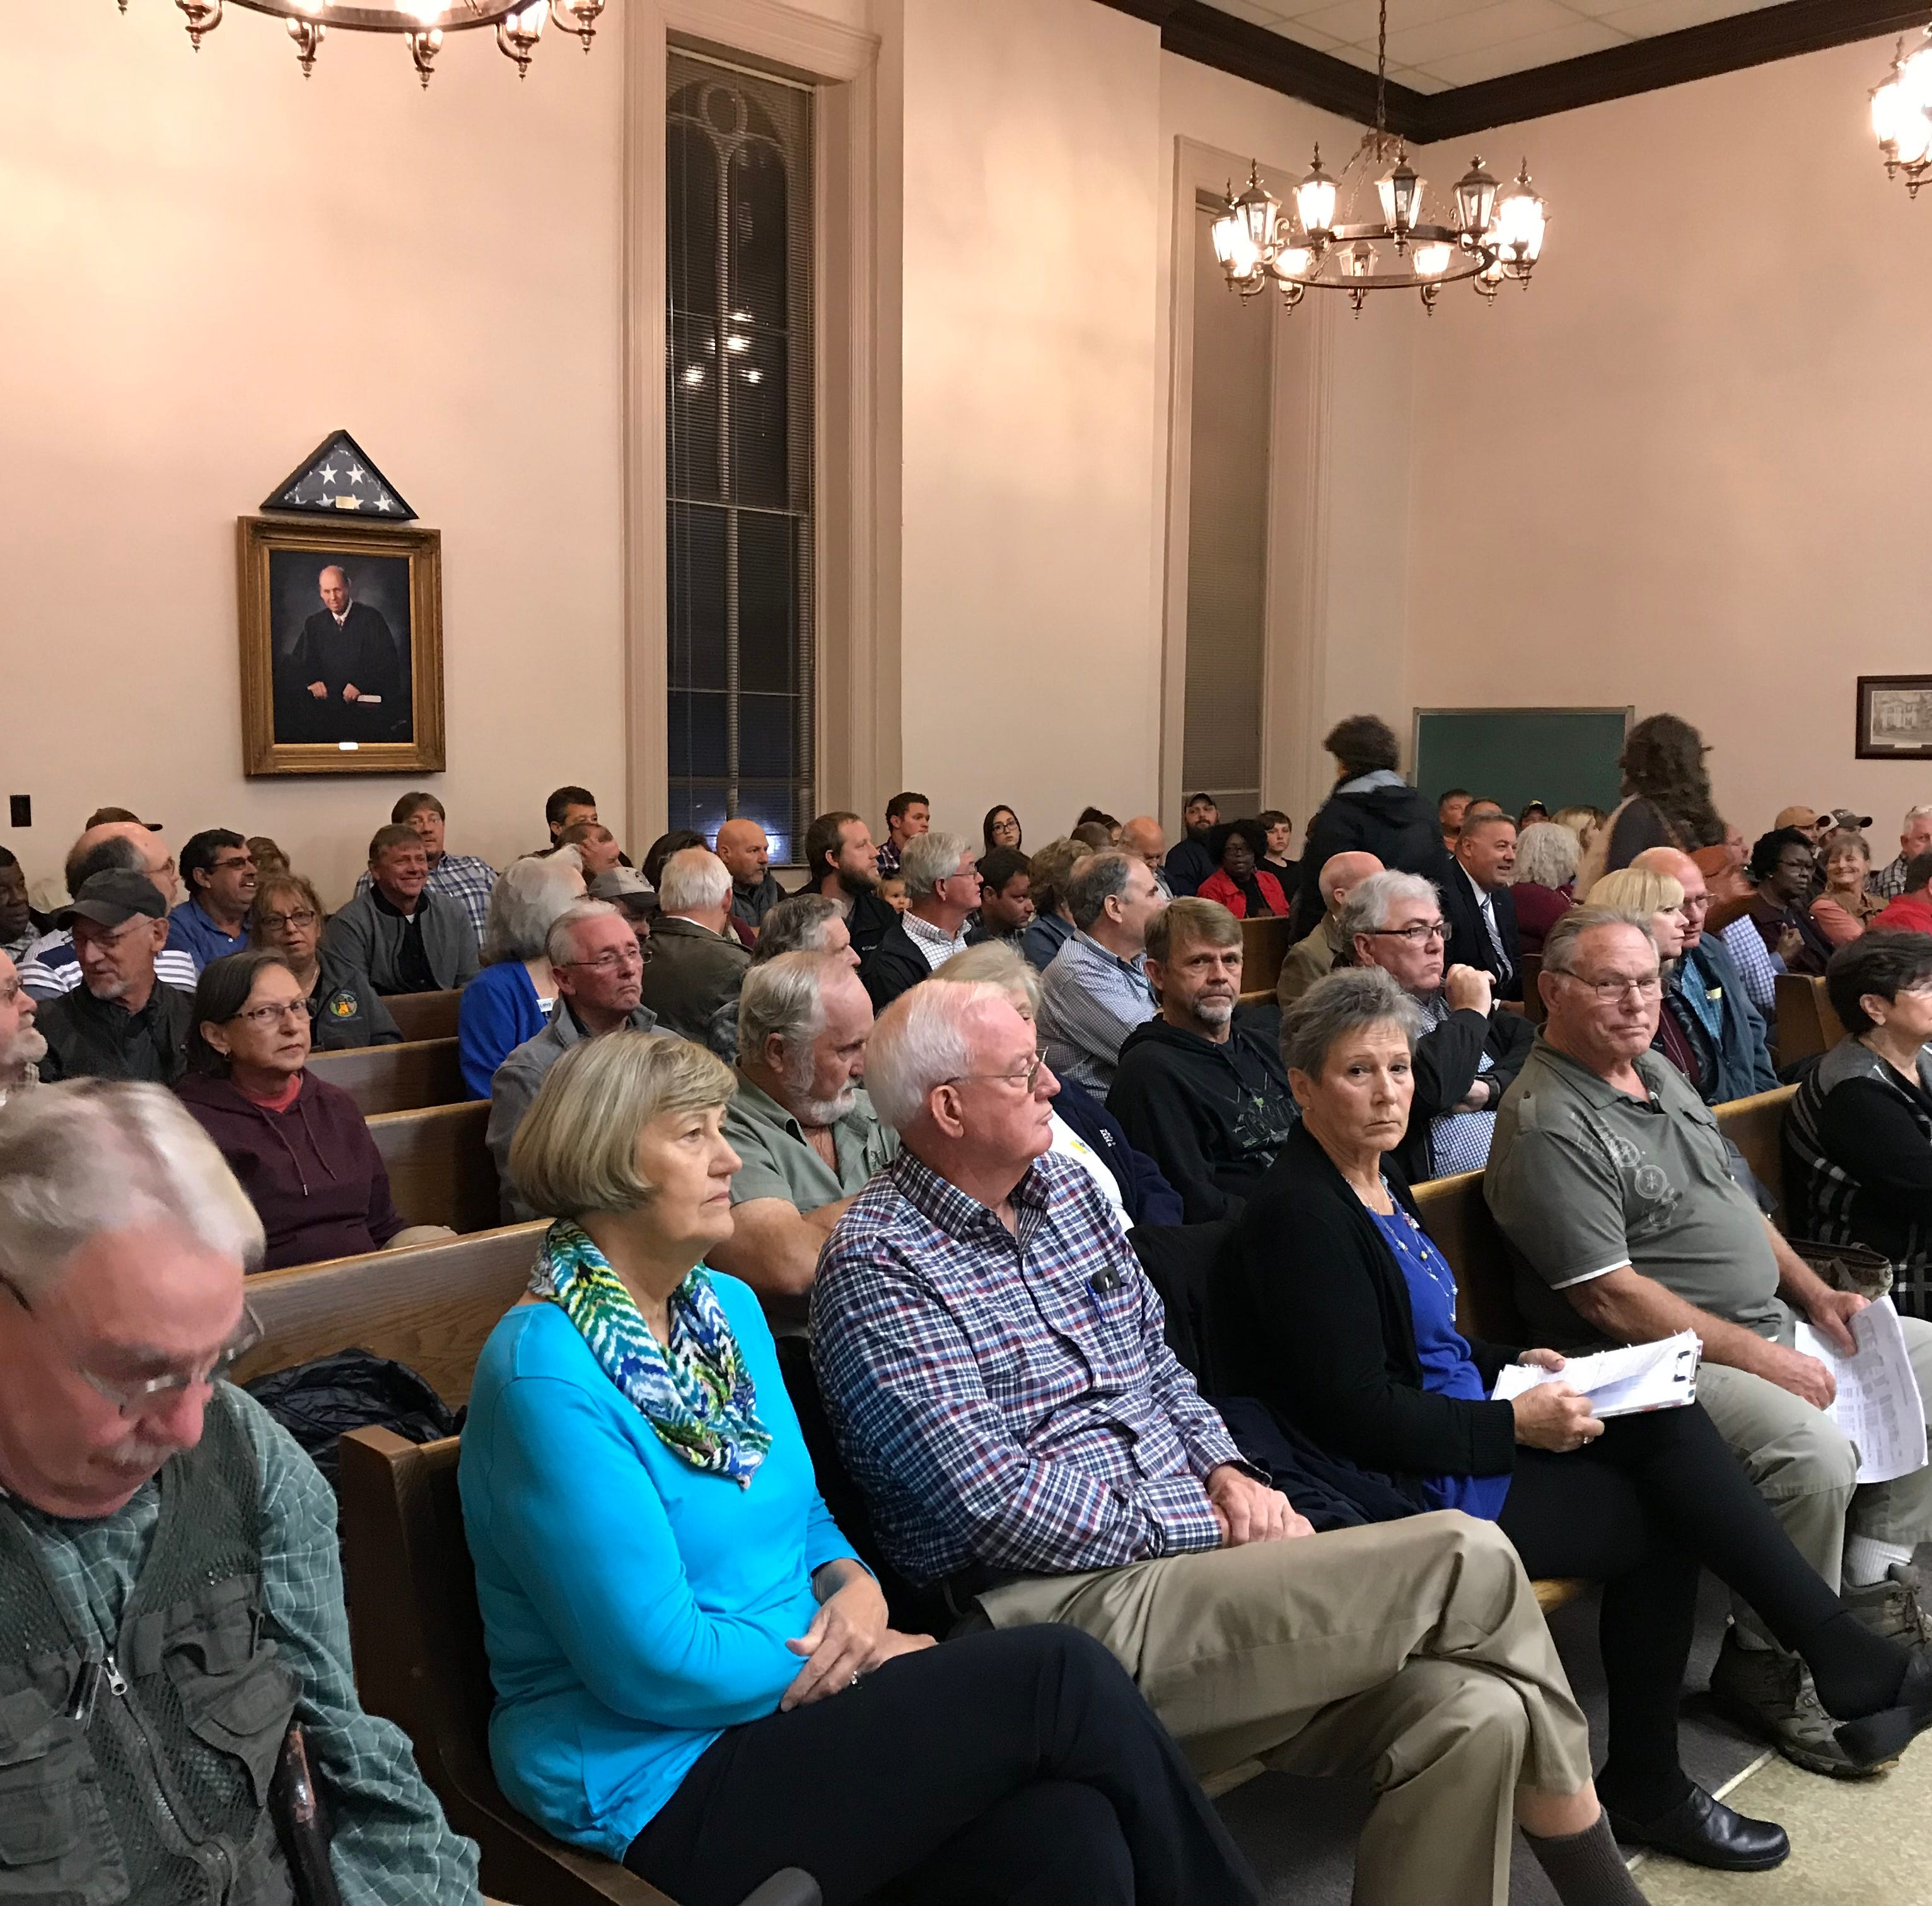 Hardeman County approves rezoning for charcoal factory after contentious public hearing